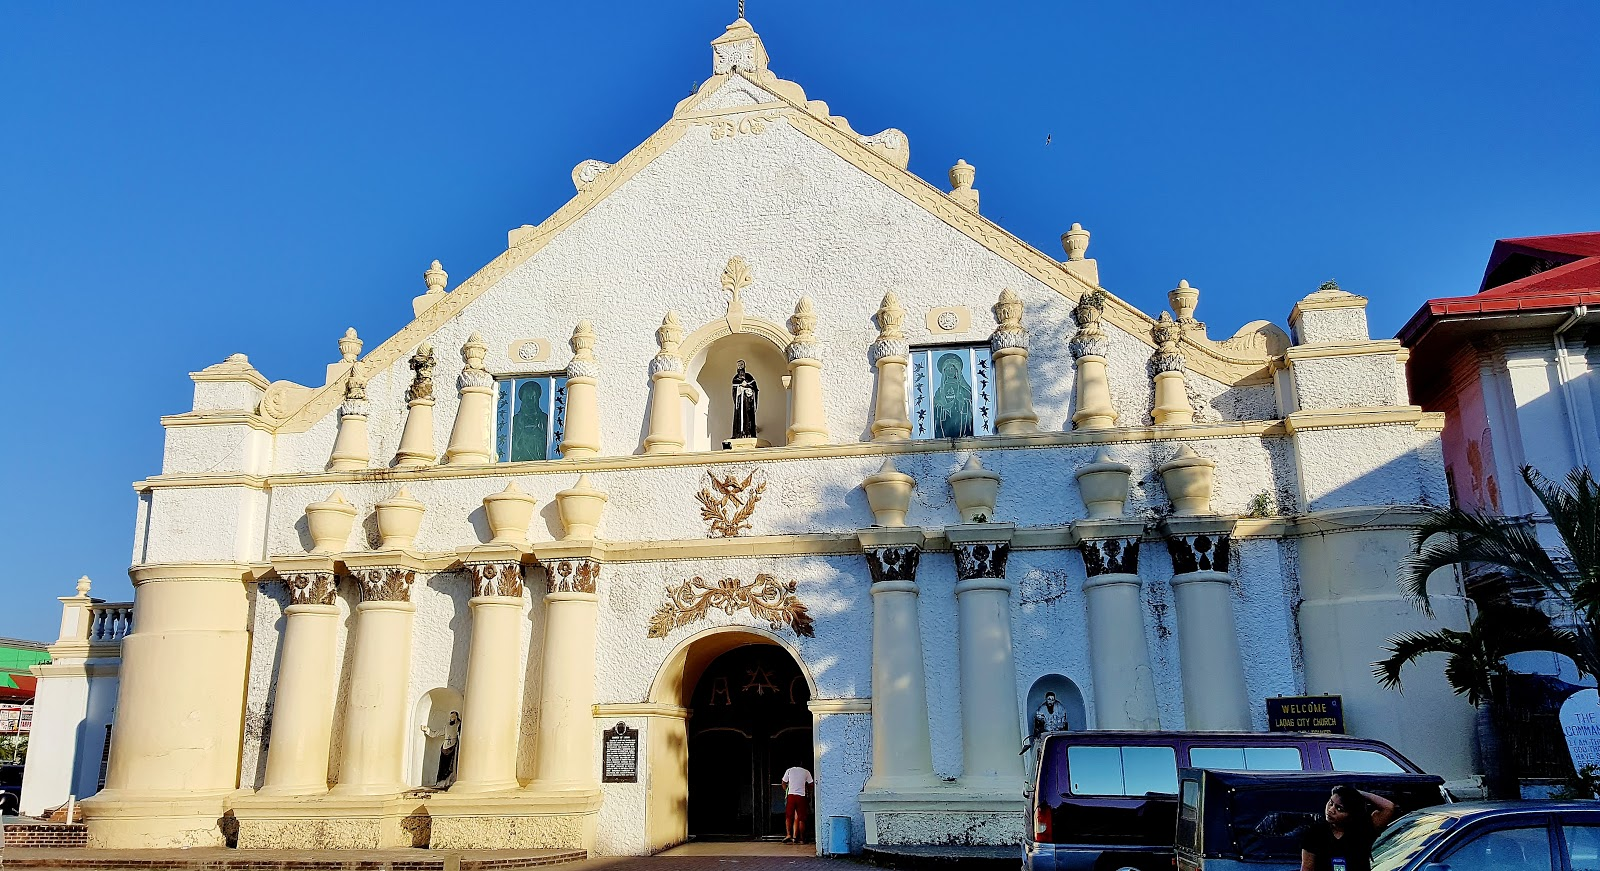 St William Cathedra, Laoag